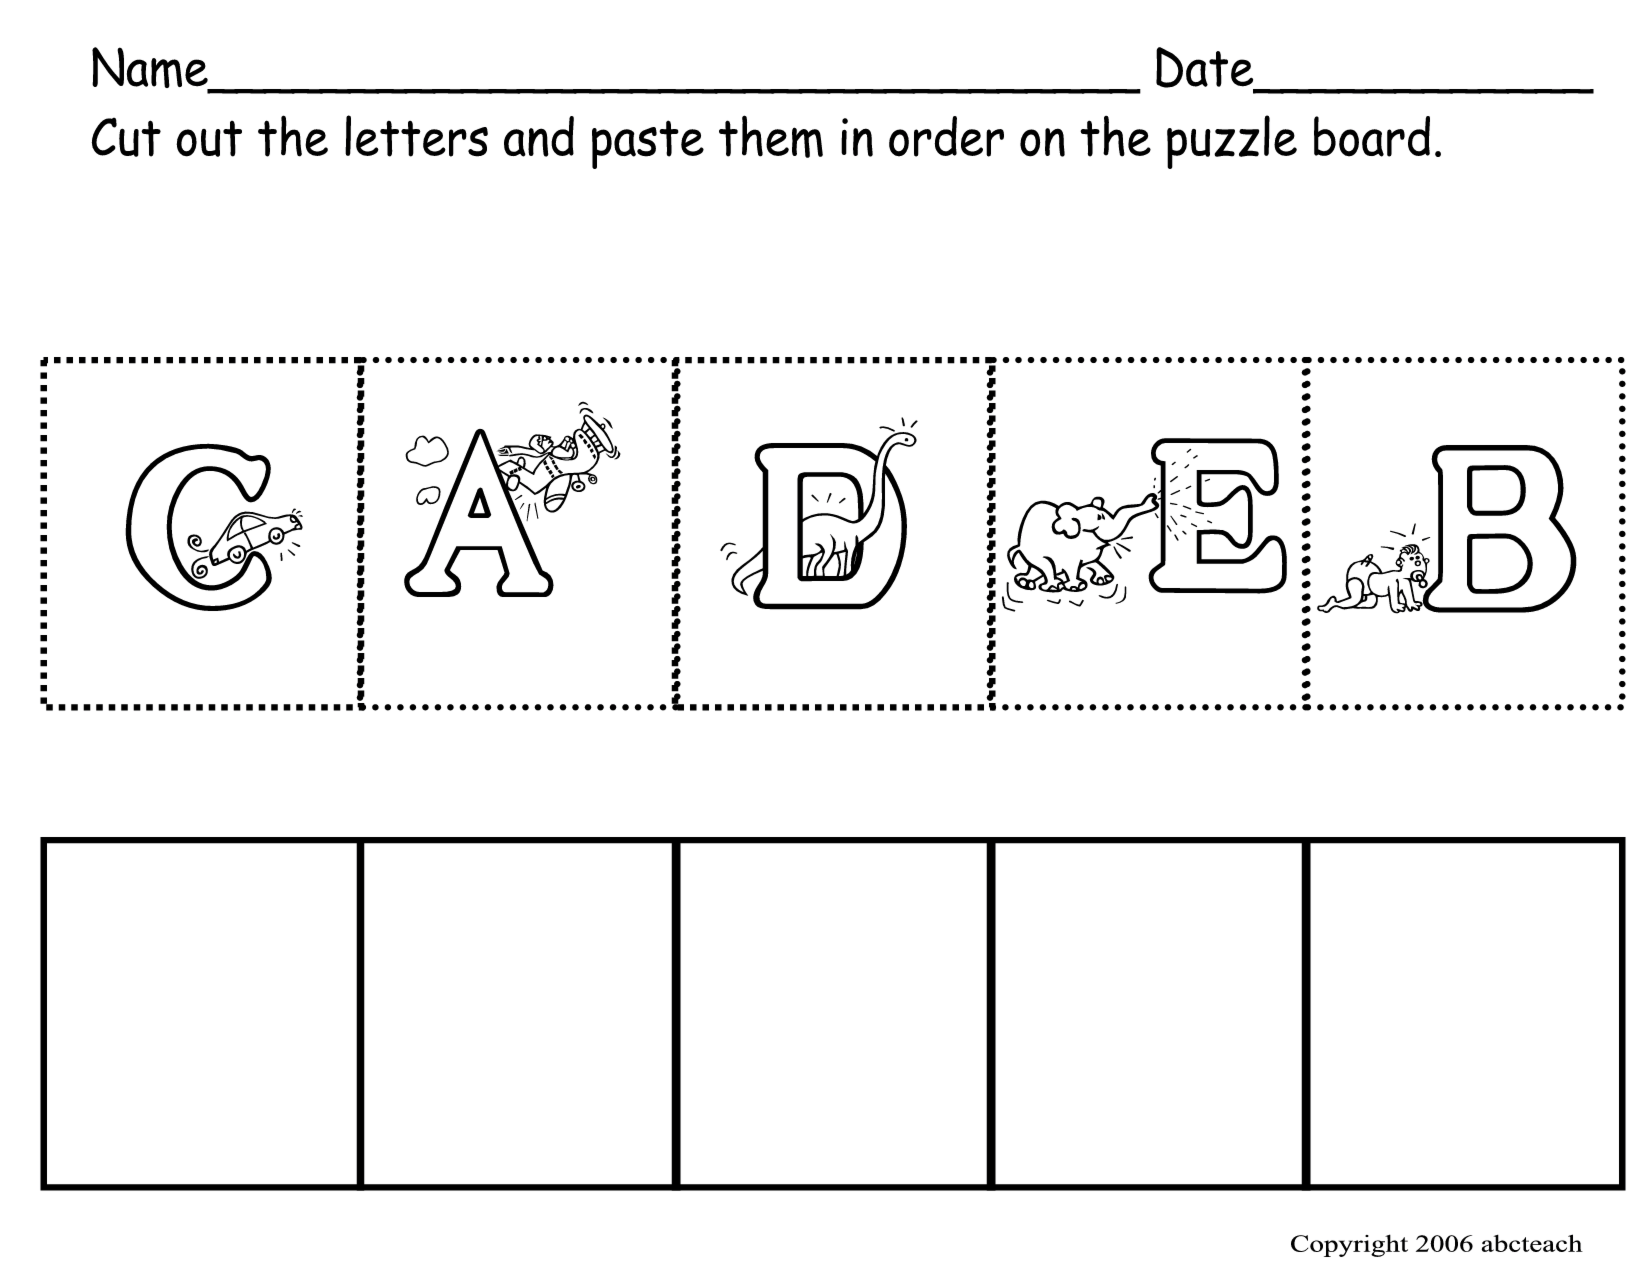 Worksheets Cut And Paste Worksheets For Kindergarten preschool abc worksheets kiduls printable letters free printables for kids learning